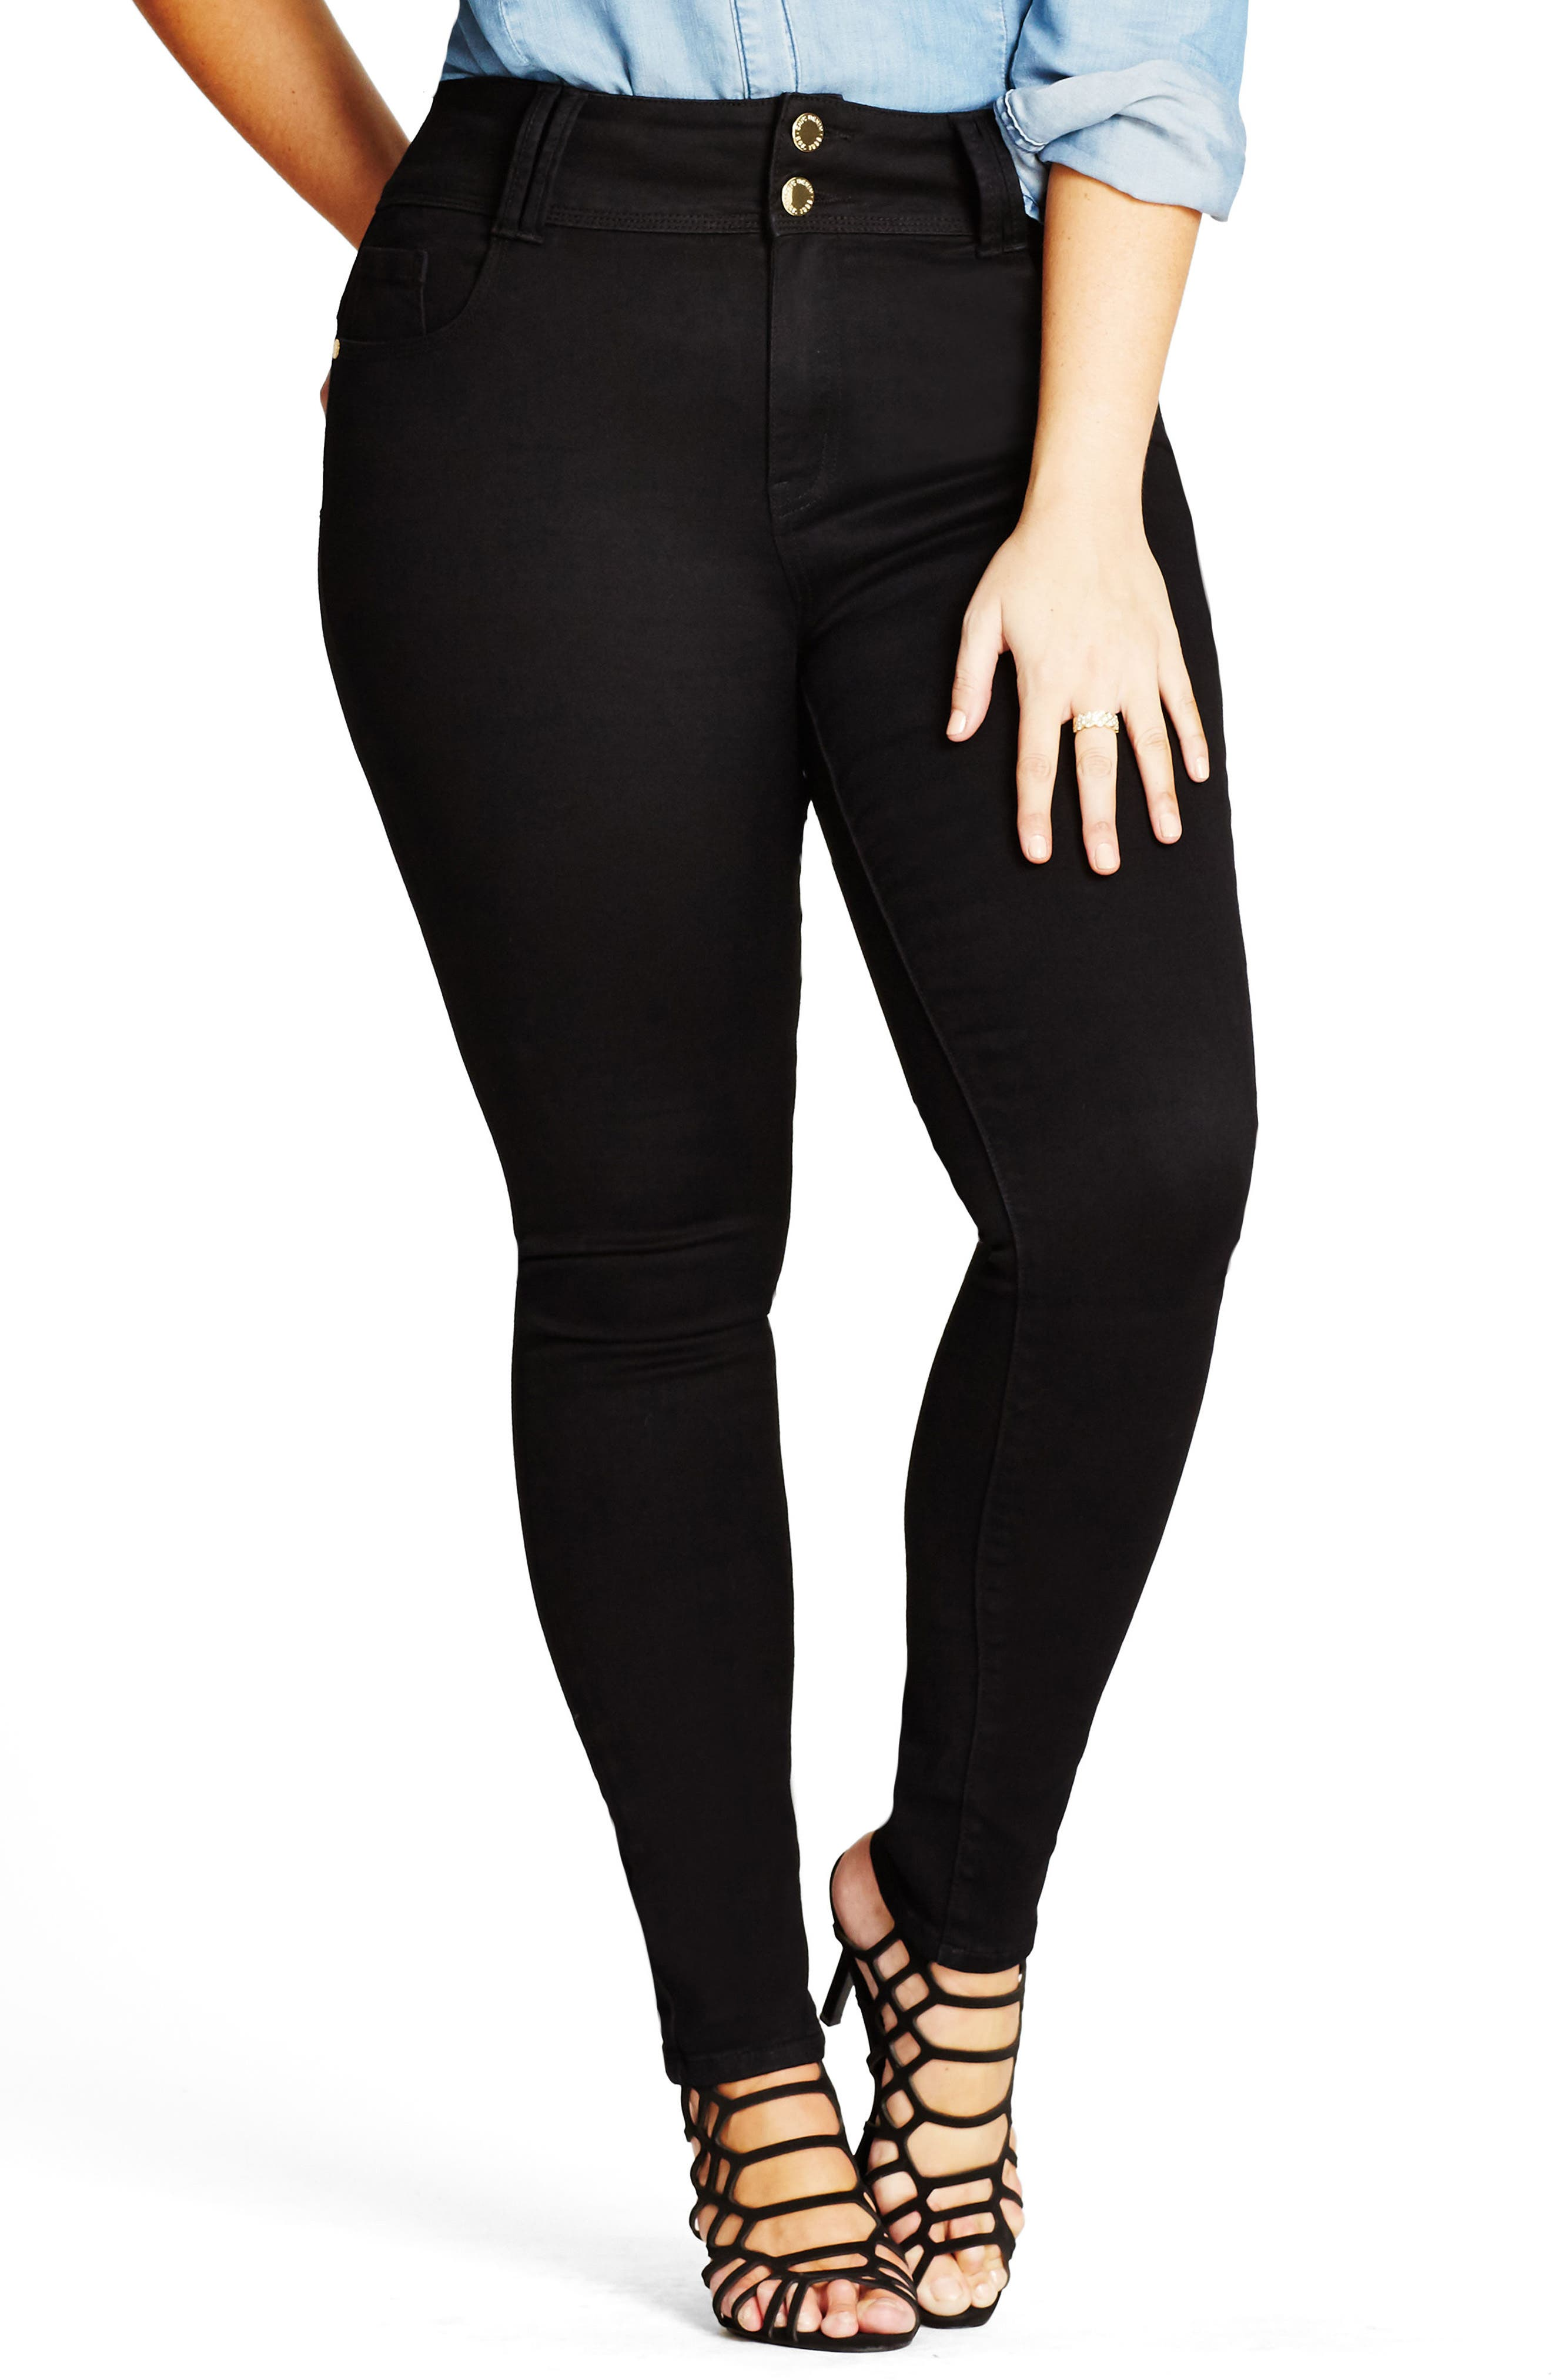 Main Image - City Chic Harley Stretch Skinny Jeans (Plus Size)